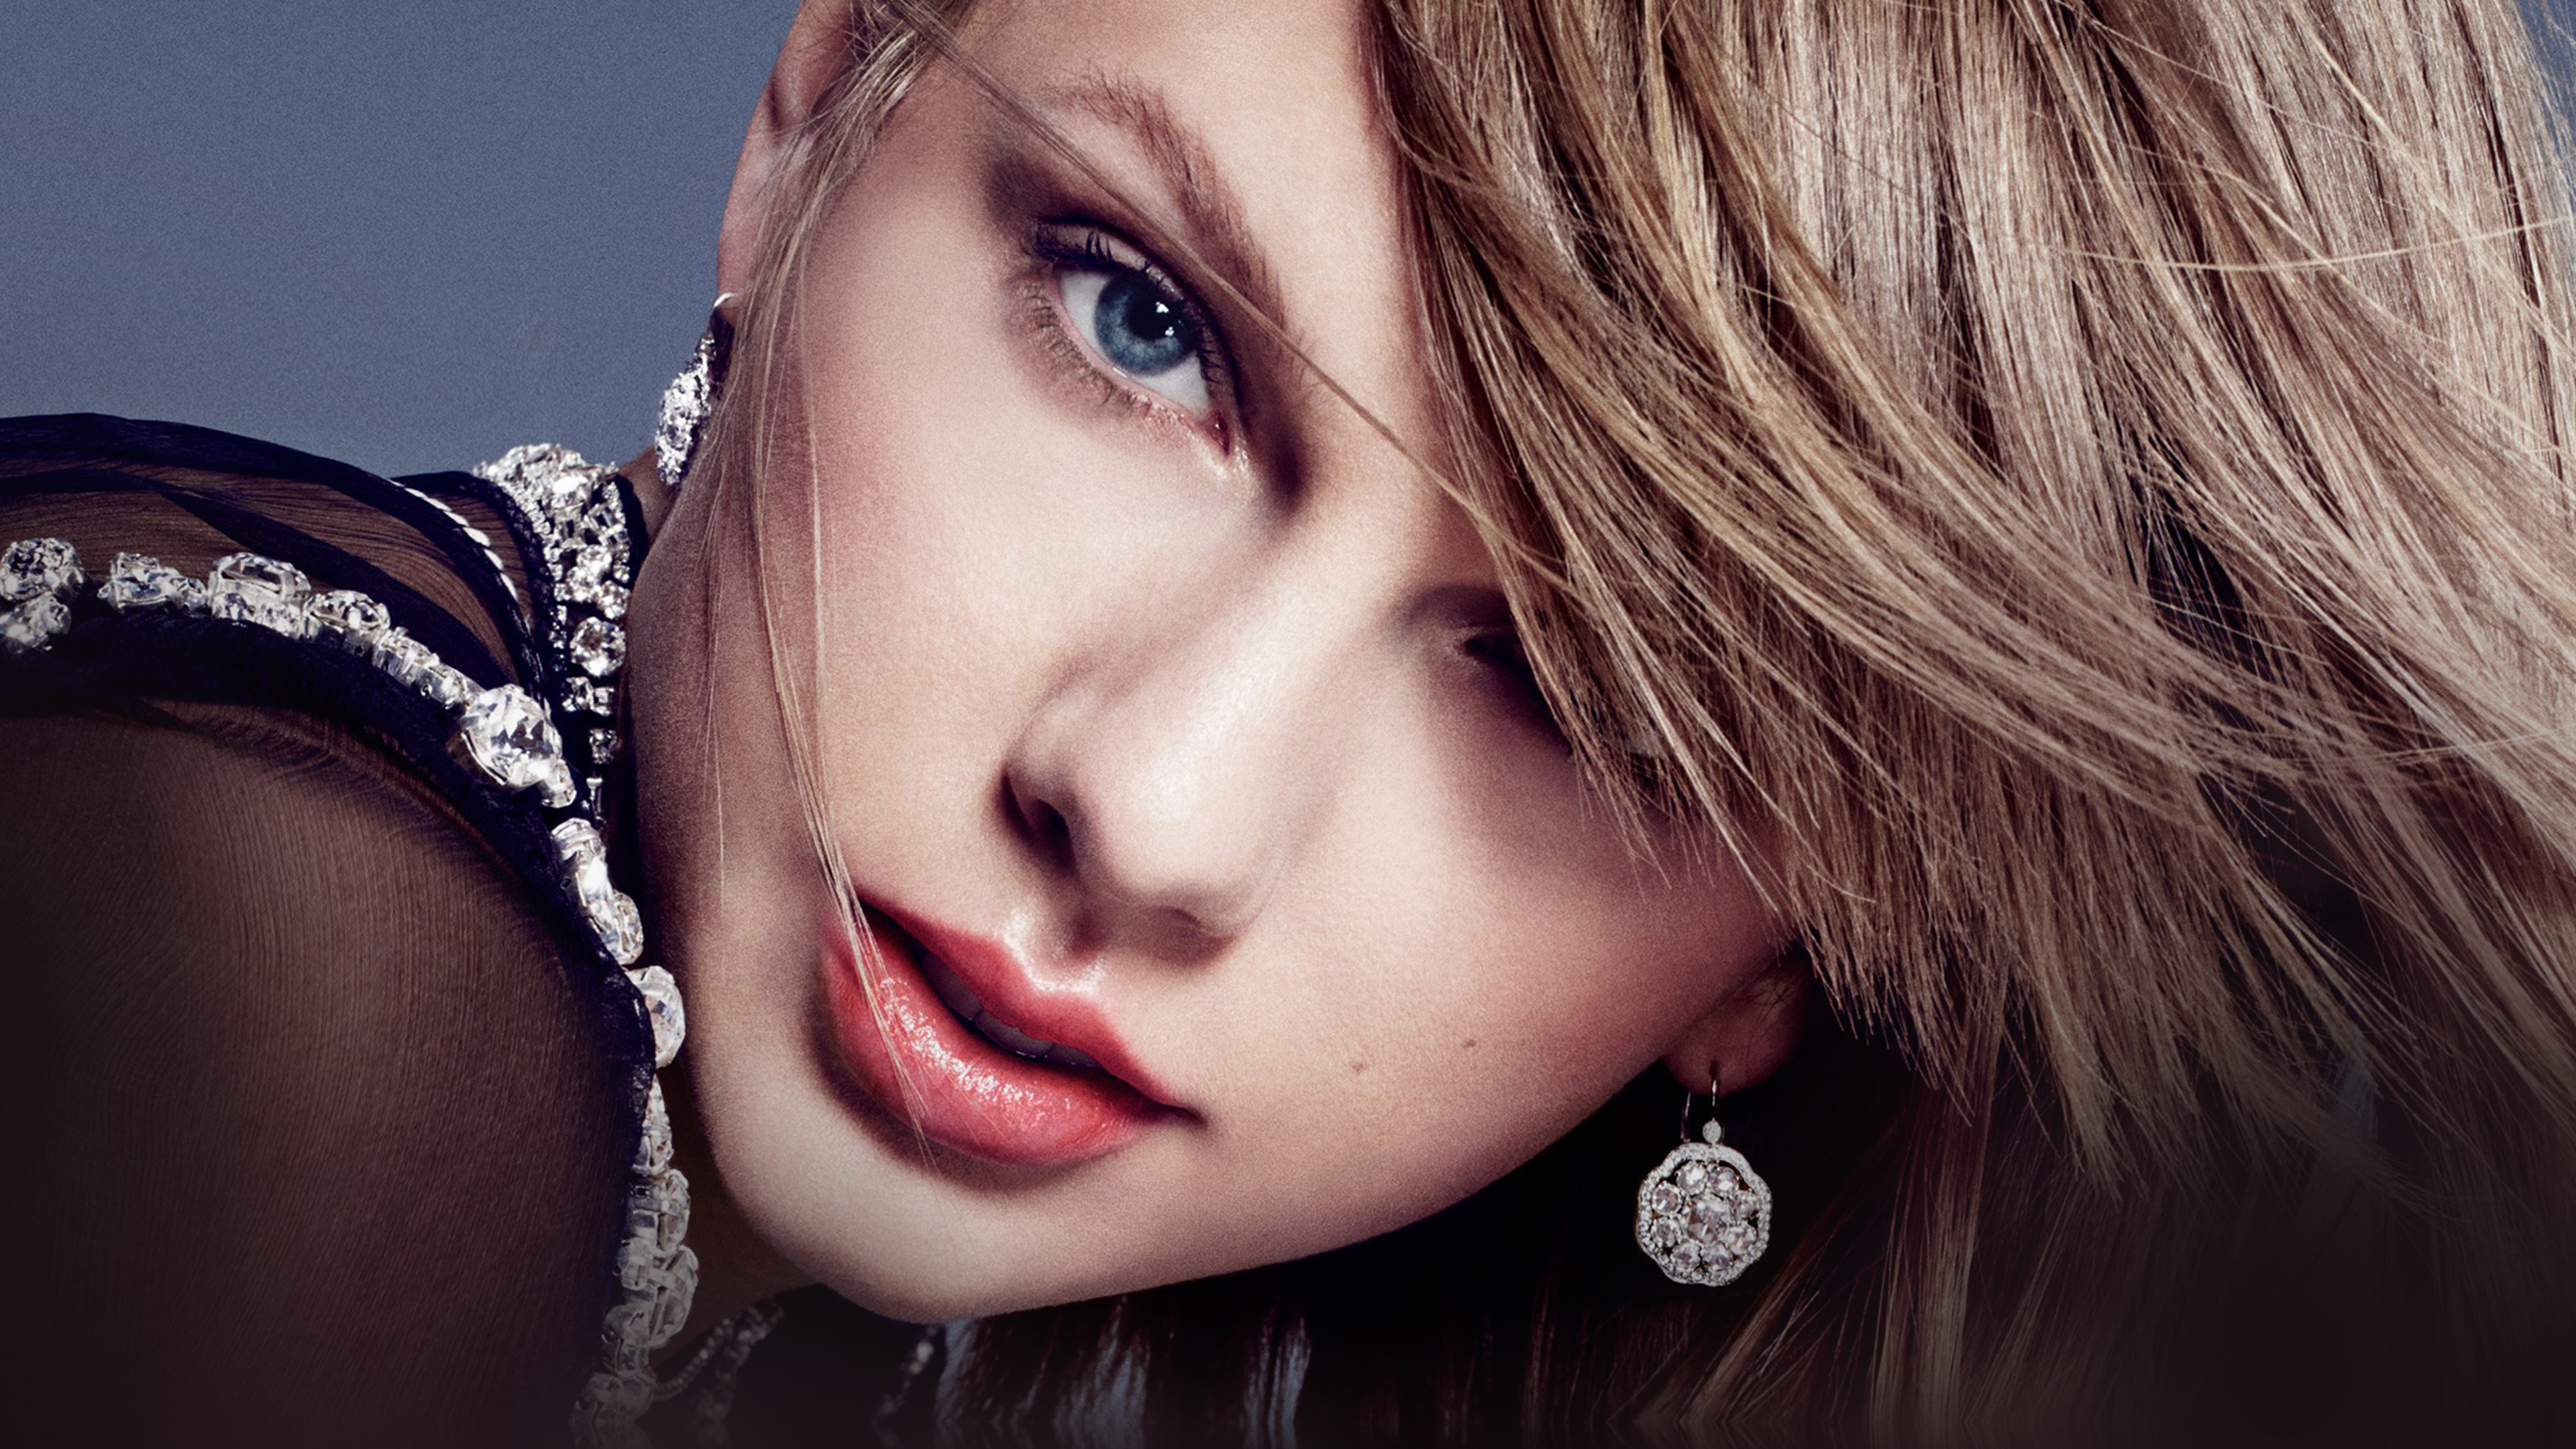 Cute Face Wallpaper For Iphone Hm02 Taylor Swift Face Sexy Music Wallpaper